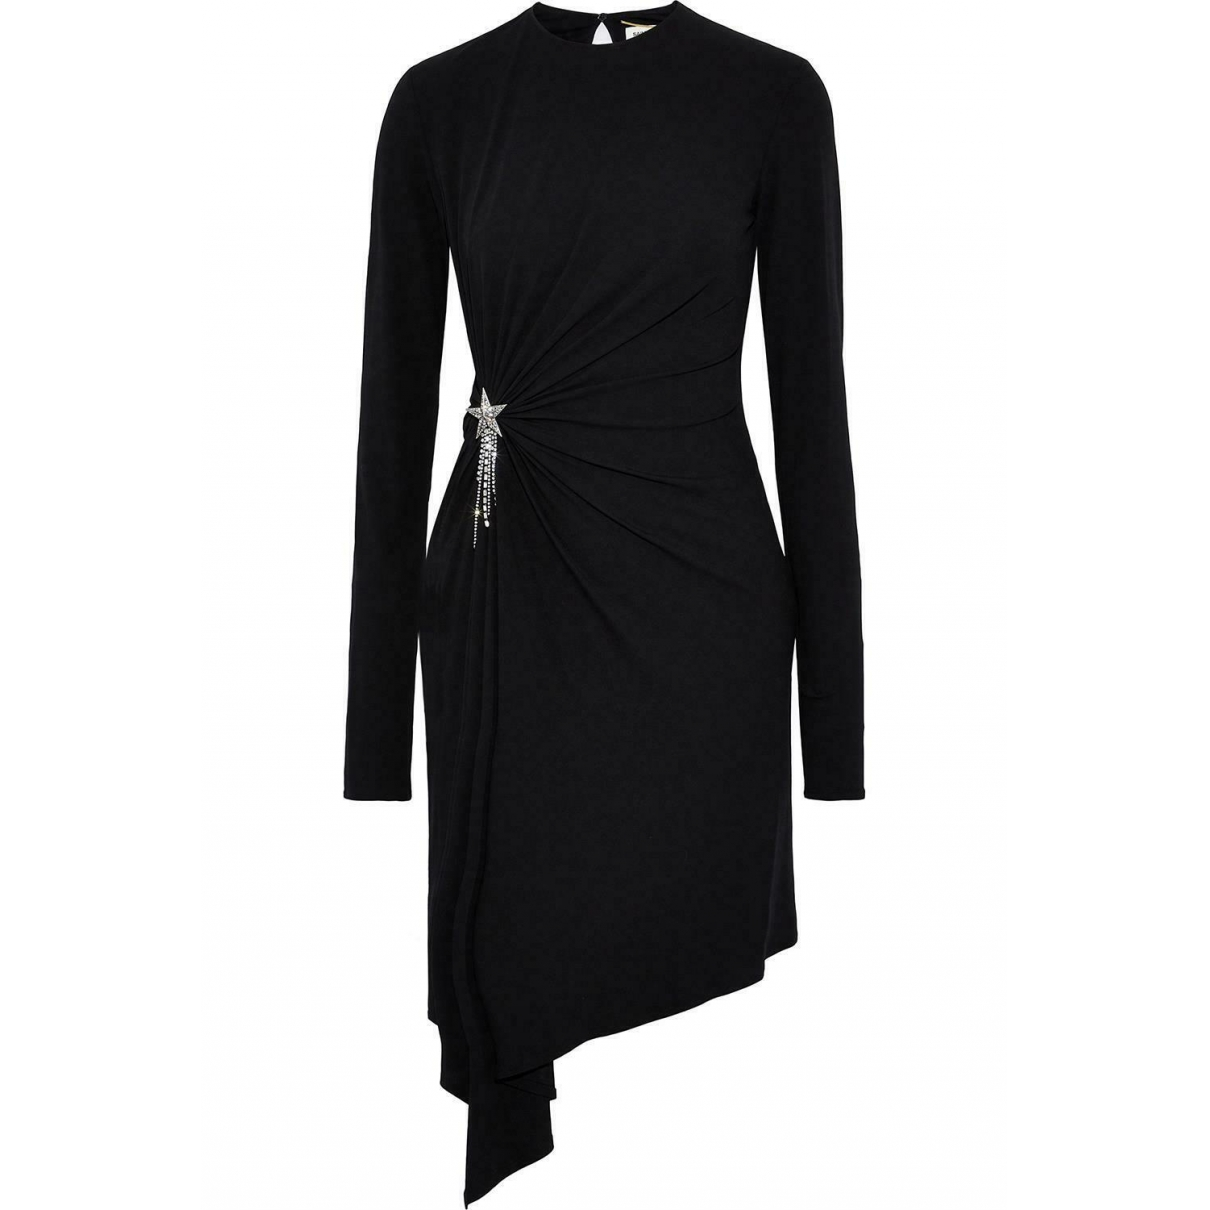 Saint Laurent \N Black dress for Women 40 FR